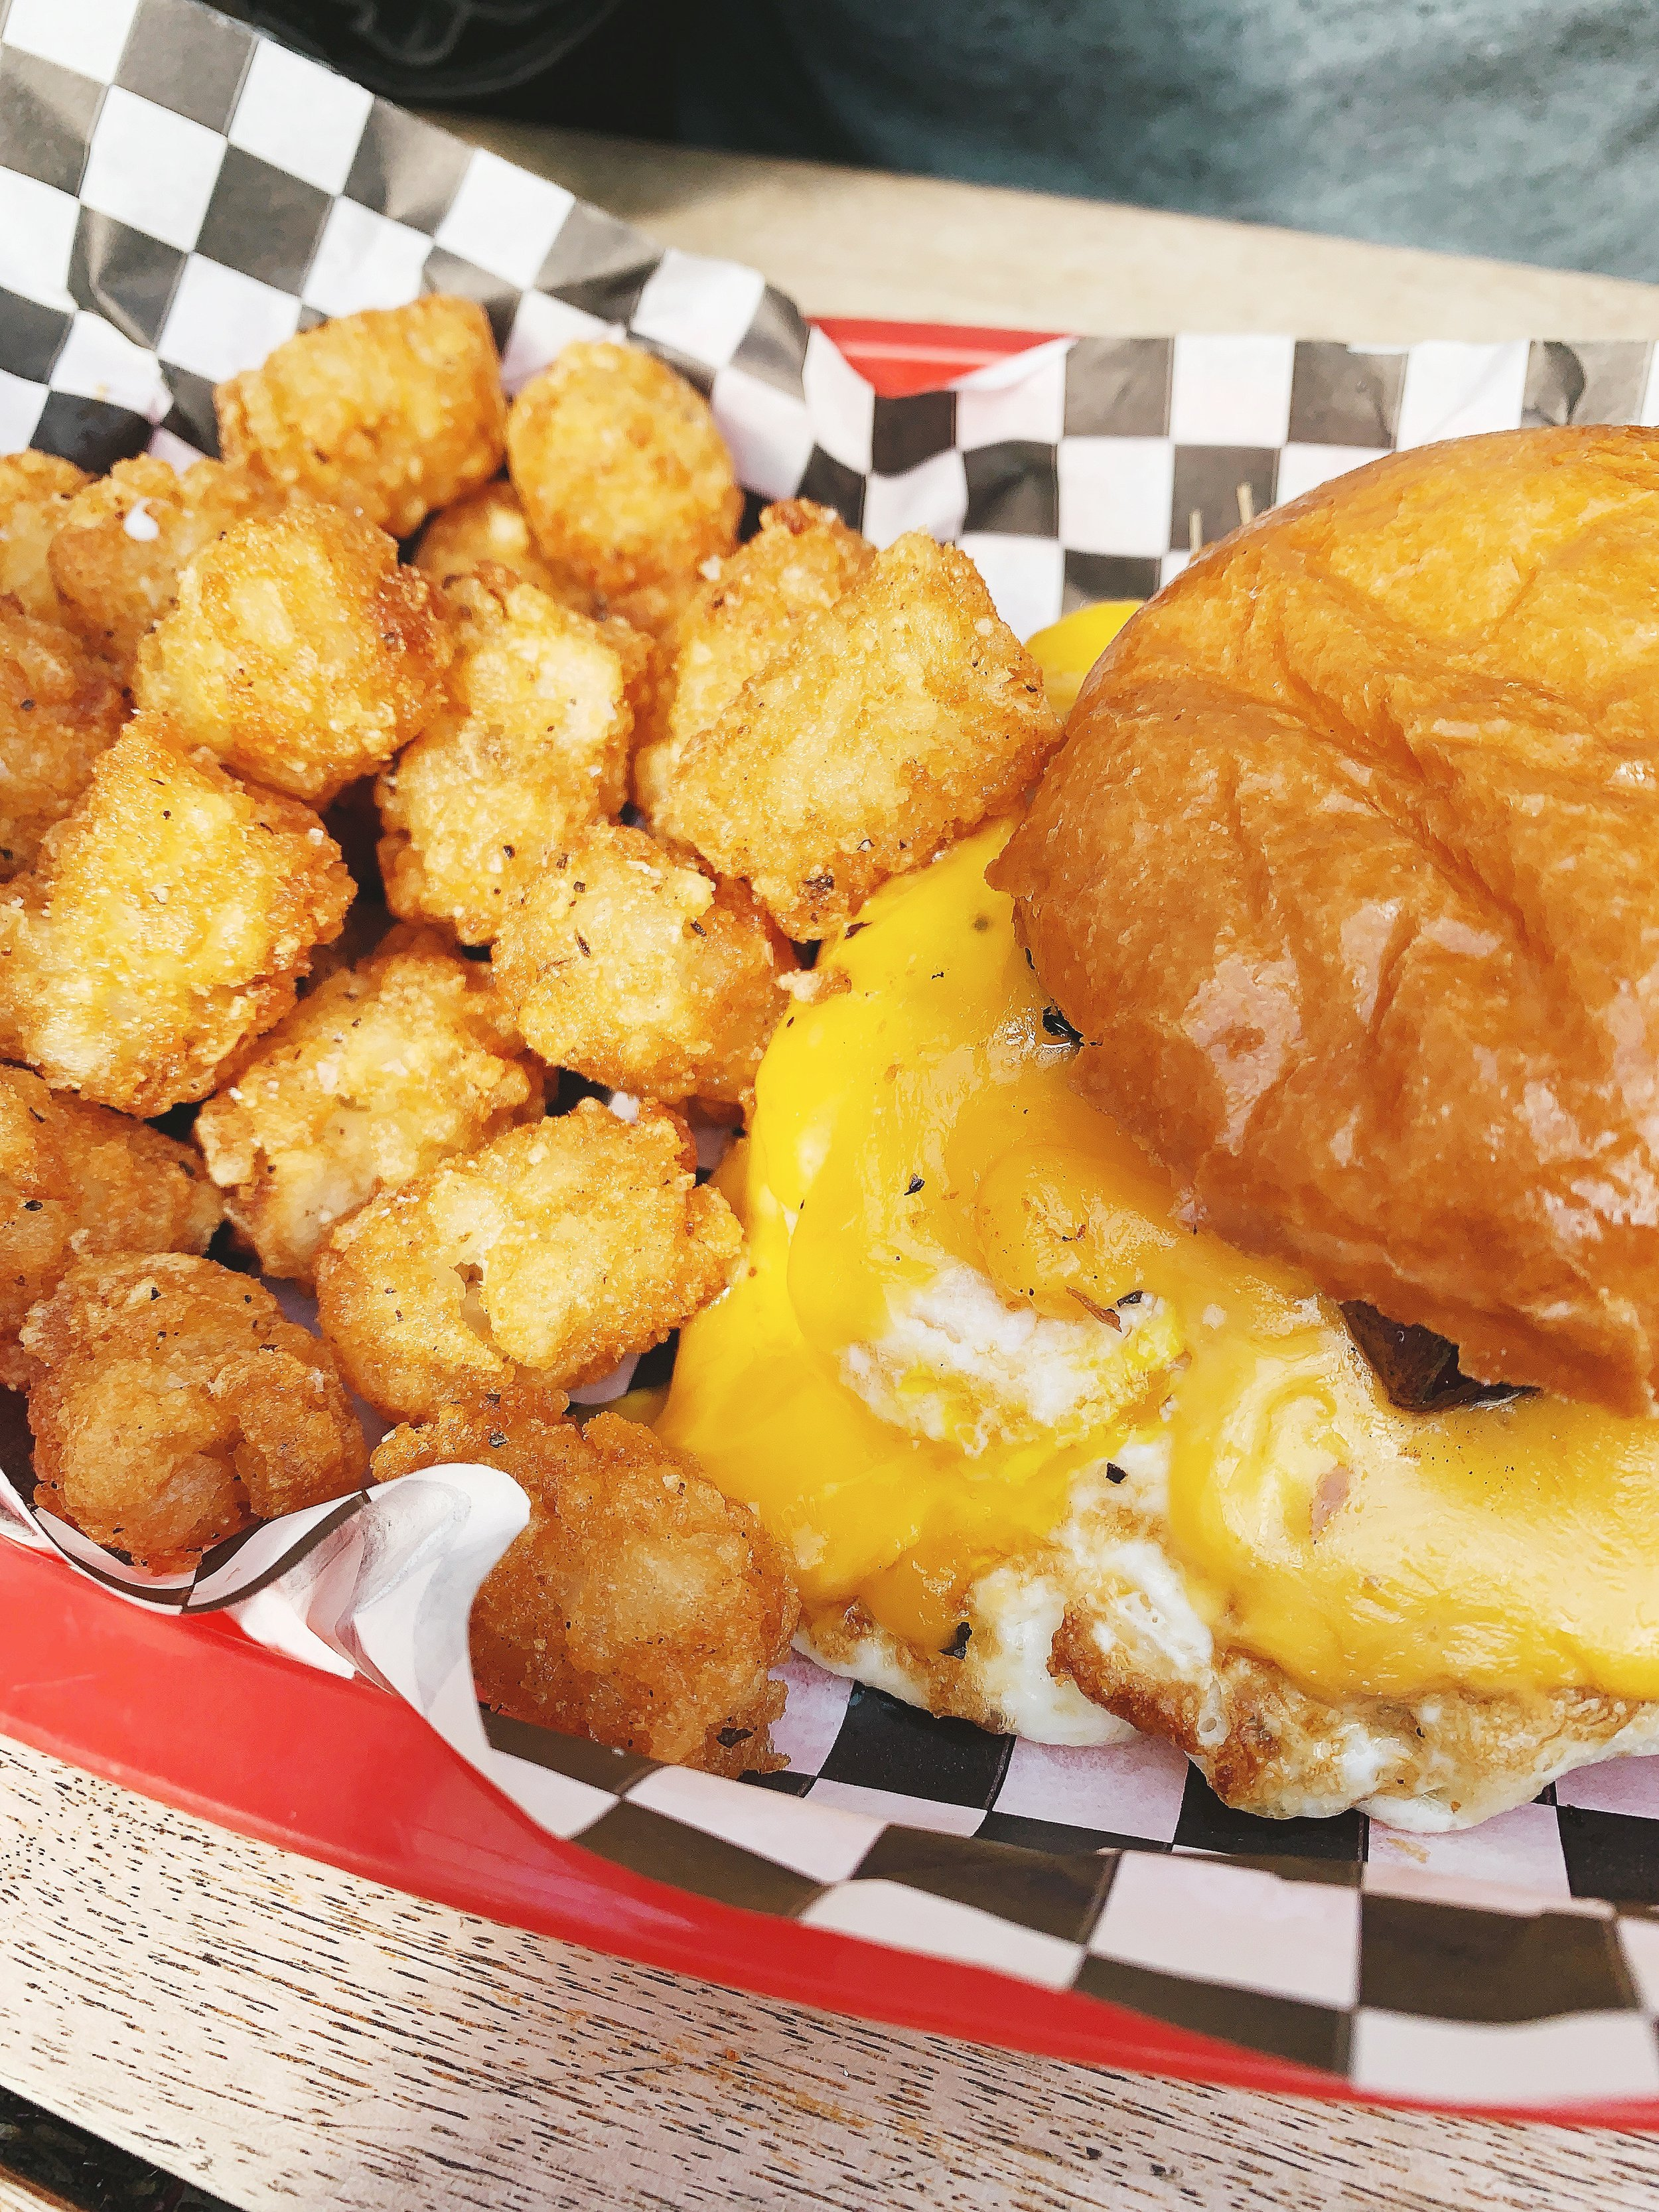 Alec's Go-to order: Breakfast Sandwich with Tater Tots